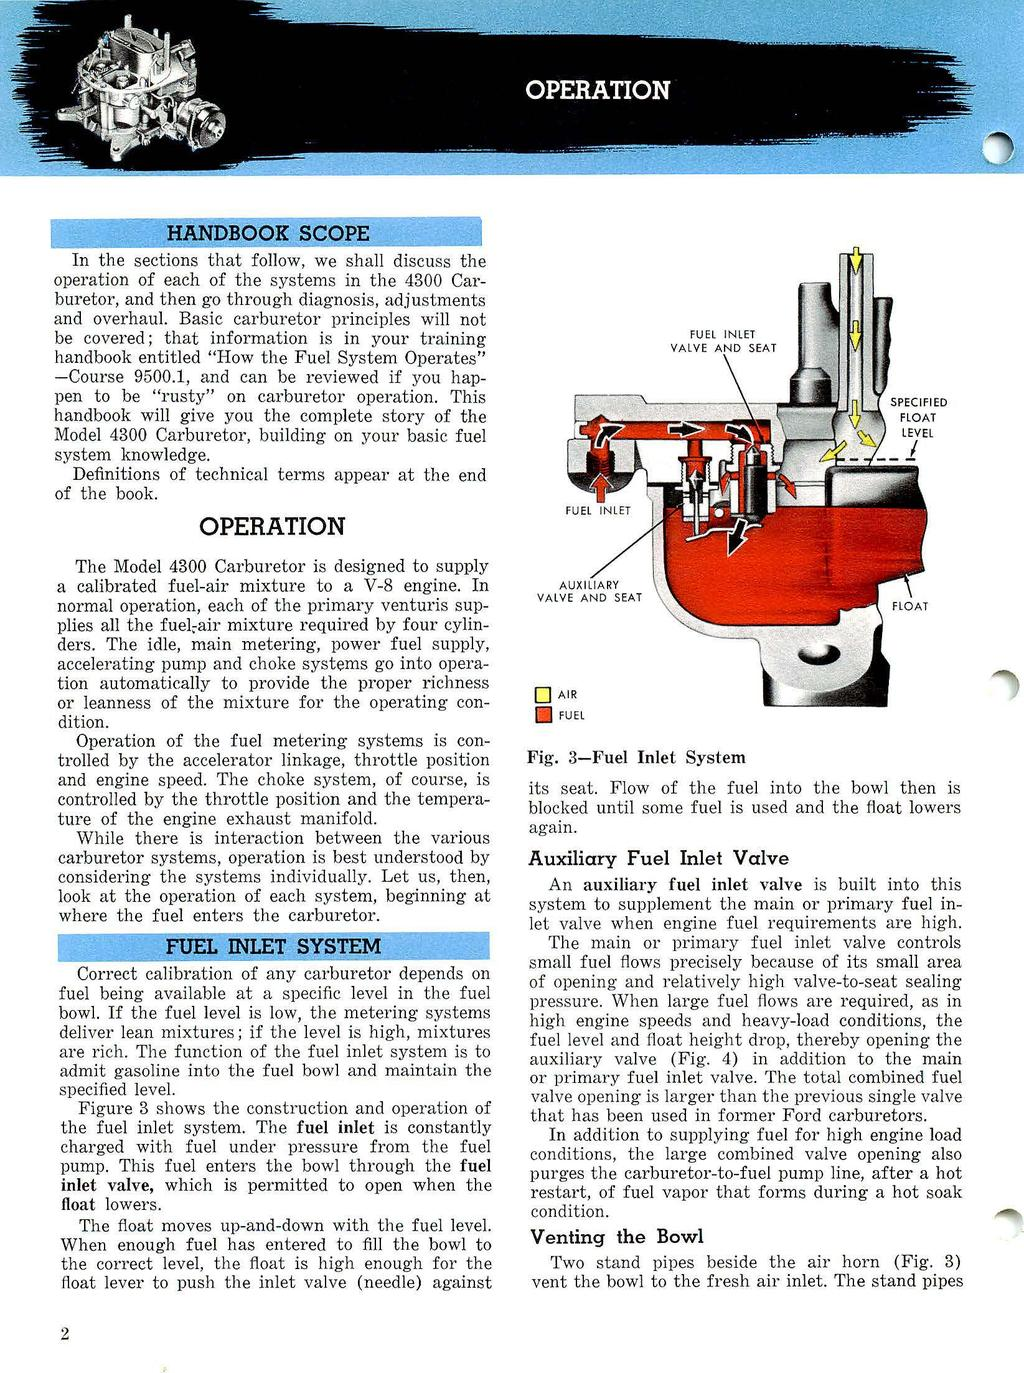 Carburetor Autolite Model Operation Adjustment Ejd And Overhaul Zenith Carburetors Diagrams Xpx Handbook Scope In The Sections That Follow We Shall Discuss Of Each